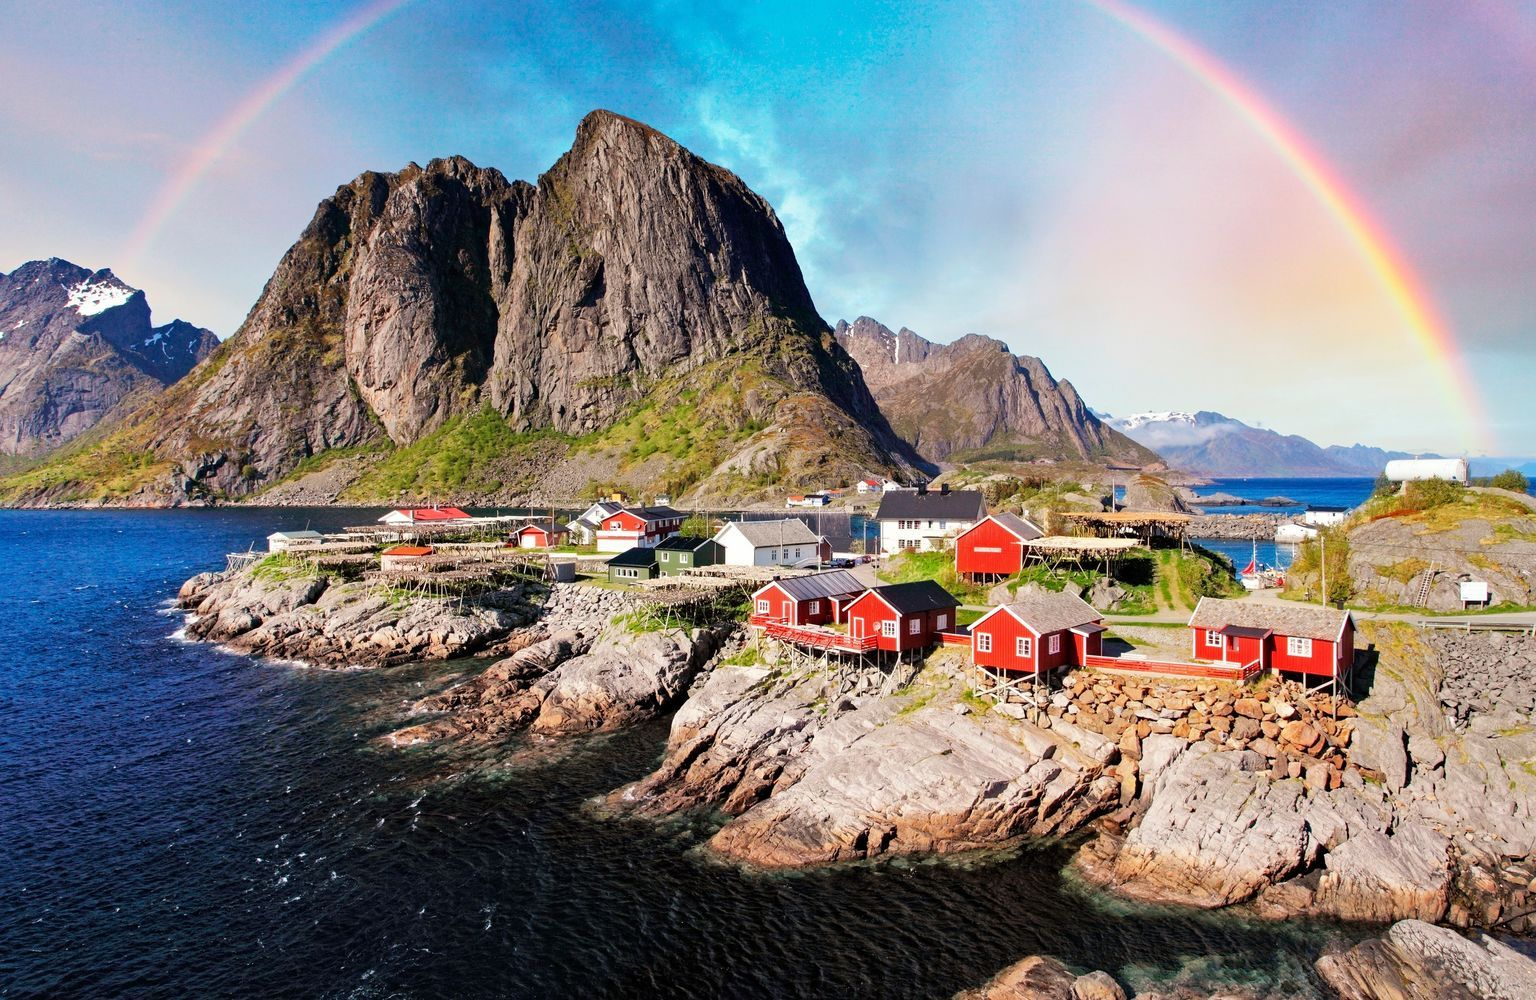 Reine, Norway: If the ends of the earth features heavily on your travel wishlist, this village, set above the Arctic Circle on the island of Moskenesøya in Norway's Lofoten archipelago, might just be your version of heaven.